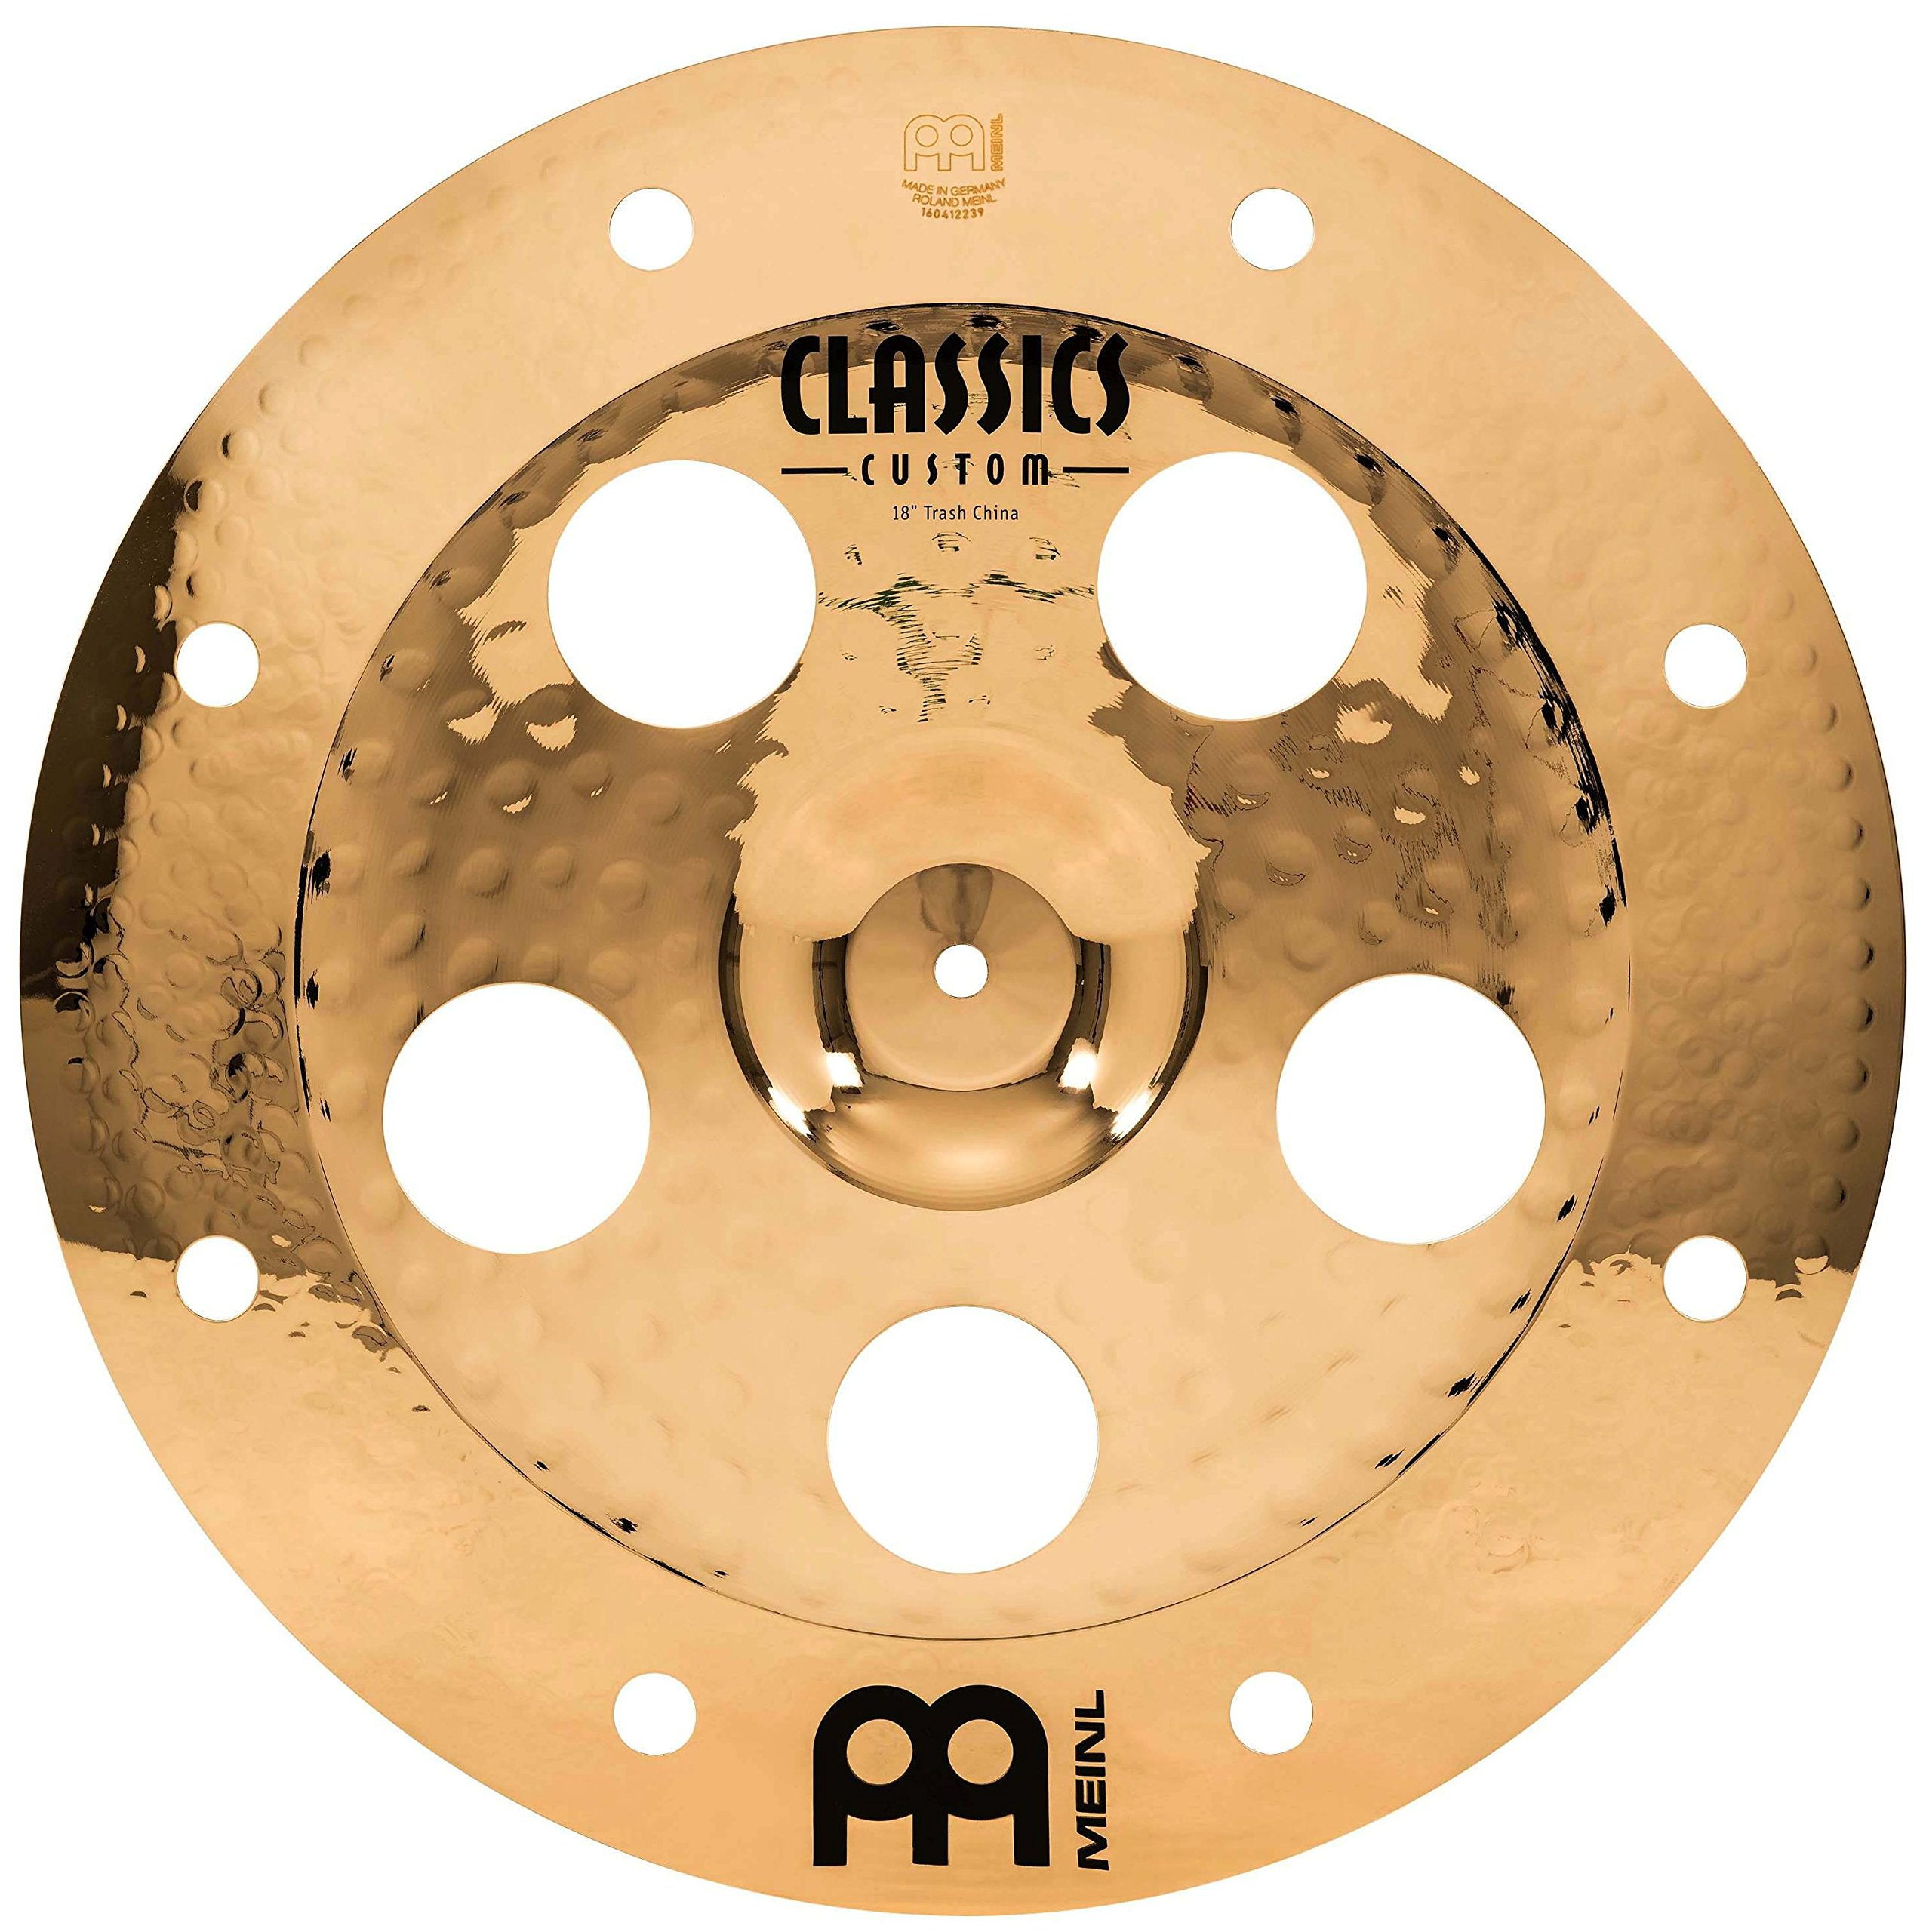 Meinl 18'' Trash China Cymbal with Holes - Classics Custom Brilliant - Made In Germany, 2-YEAR WARRANTY (CC18TRCH-B) by Meinl Cymbals